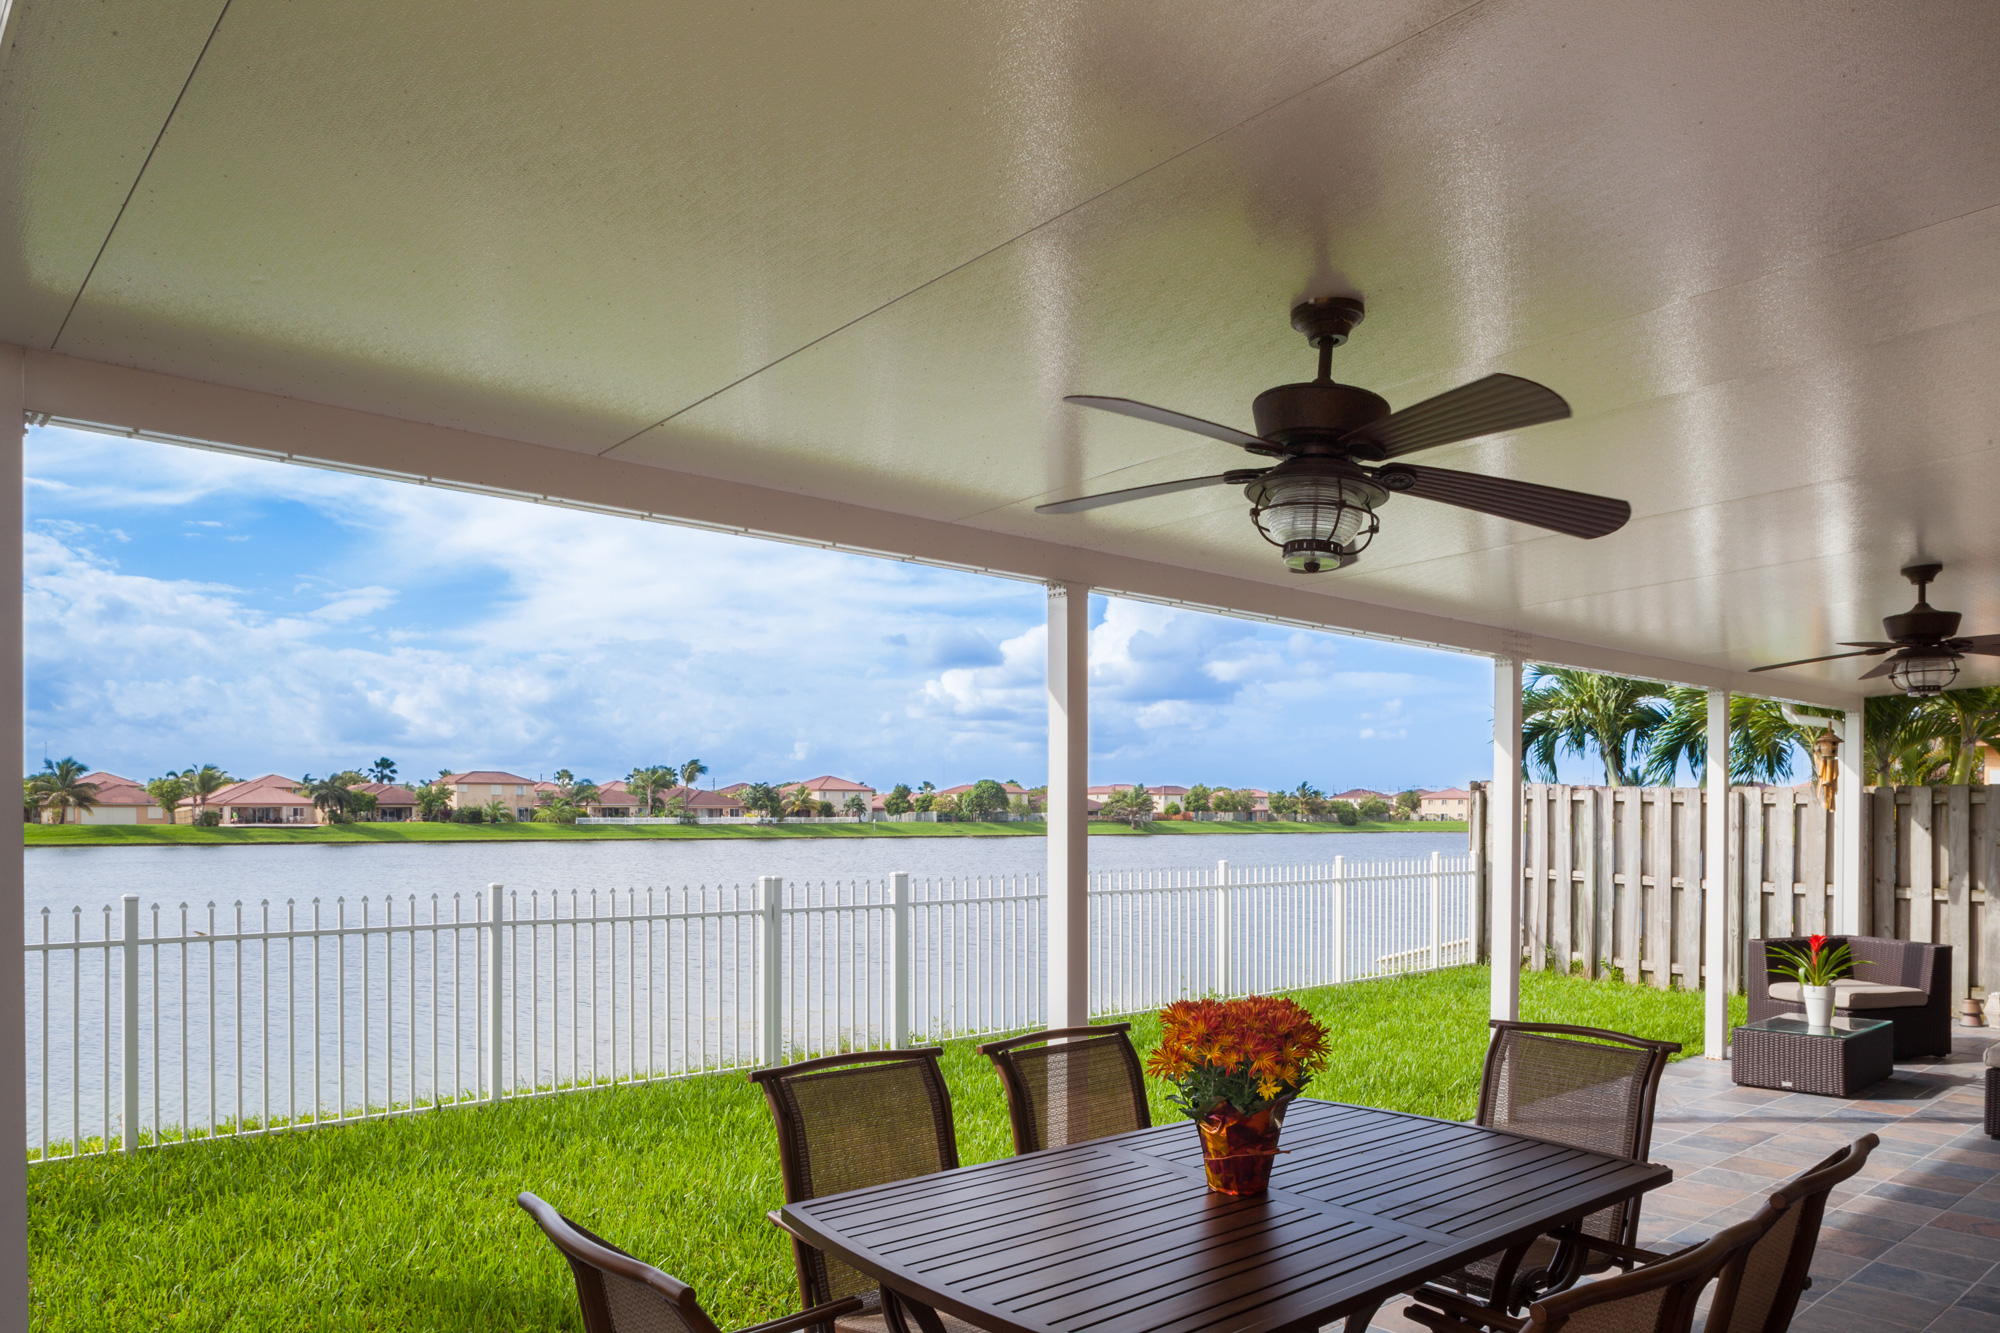 Patio Covers Patio Roofs Amp Gazebos Floridian Patio Products